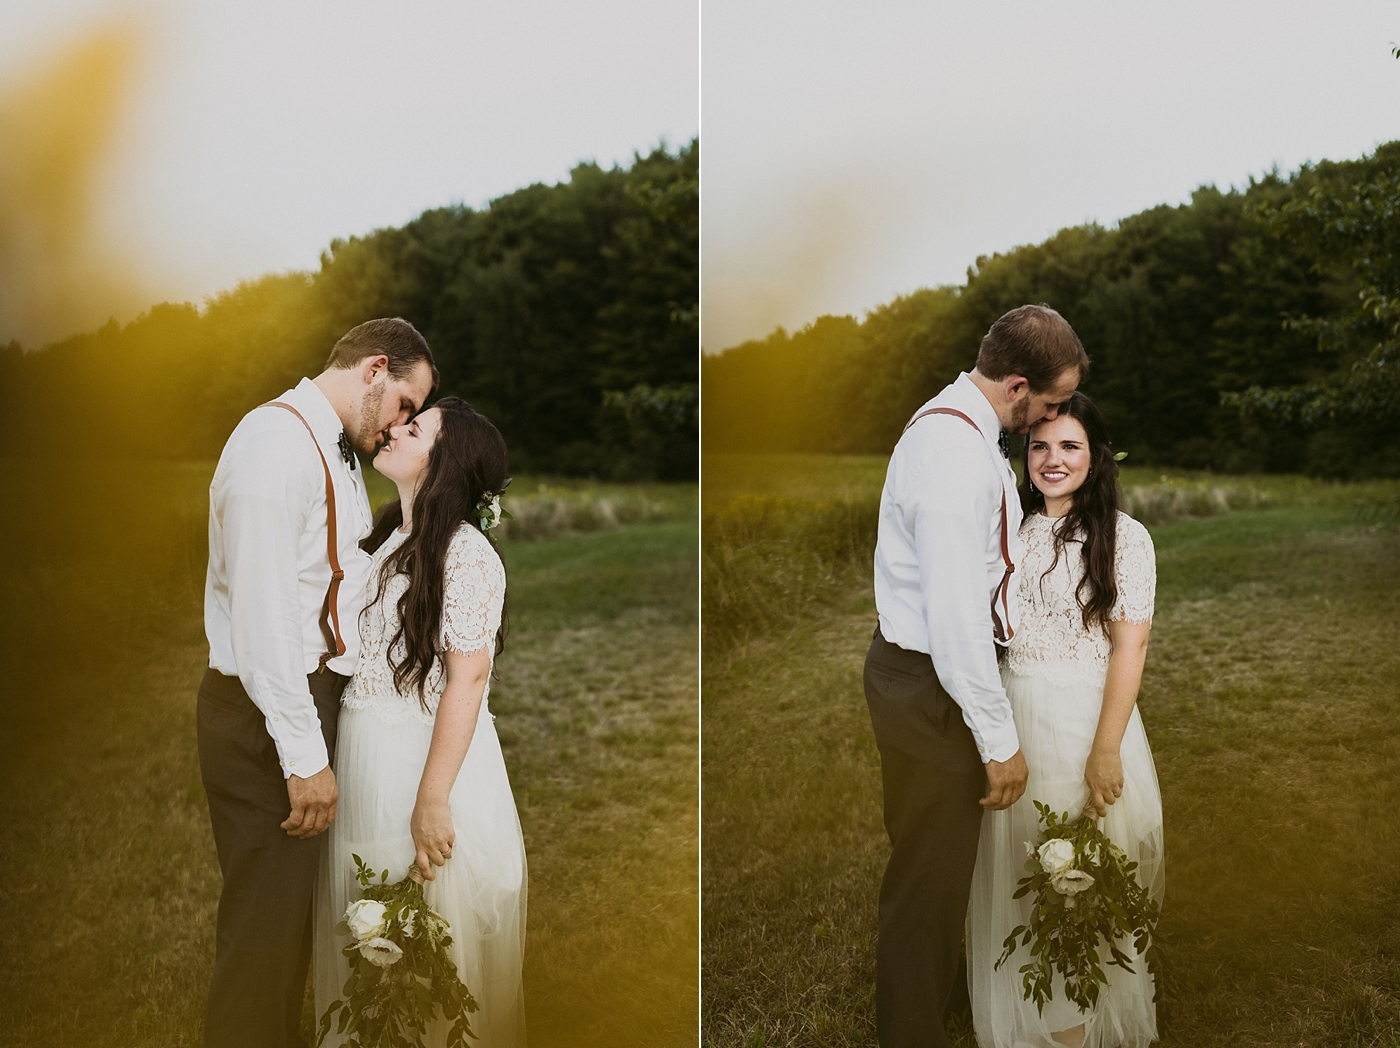 Meadow-Elopement-Ashley+Ben_MJPHOTO2018-242.jpg